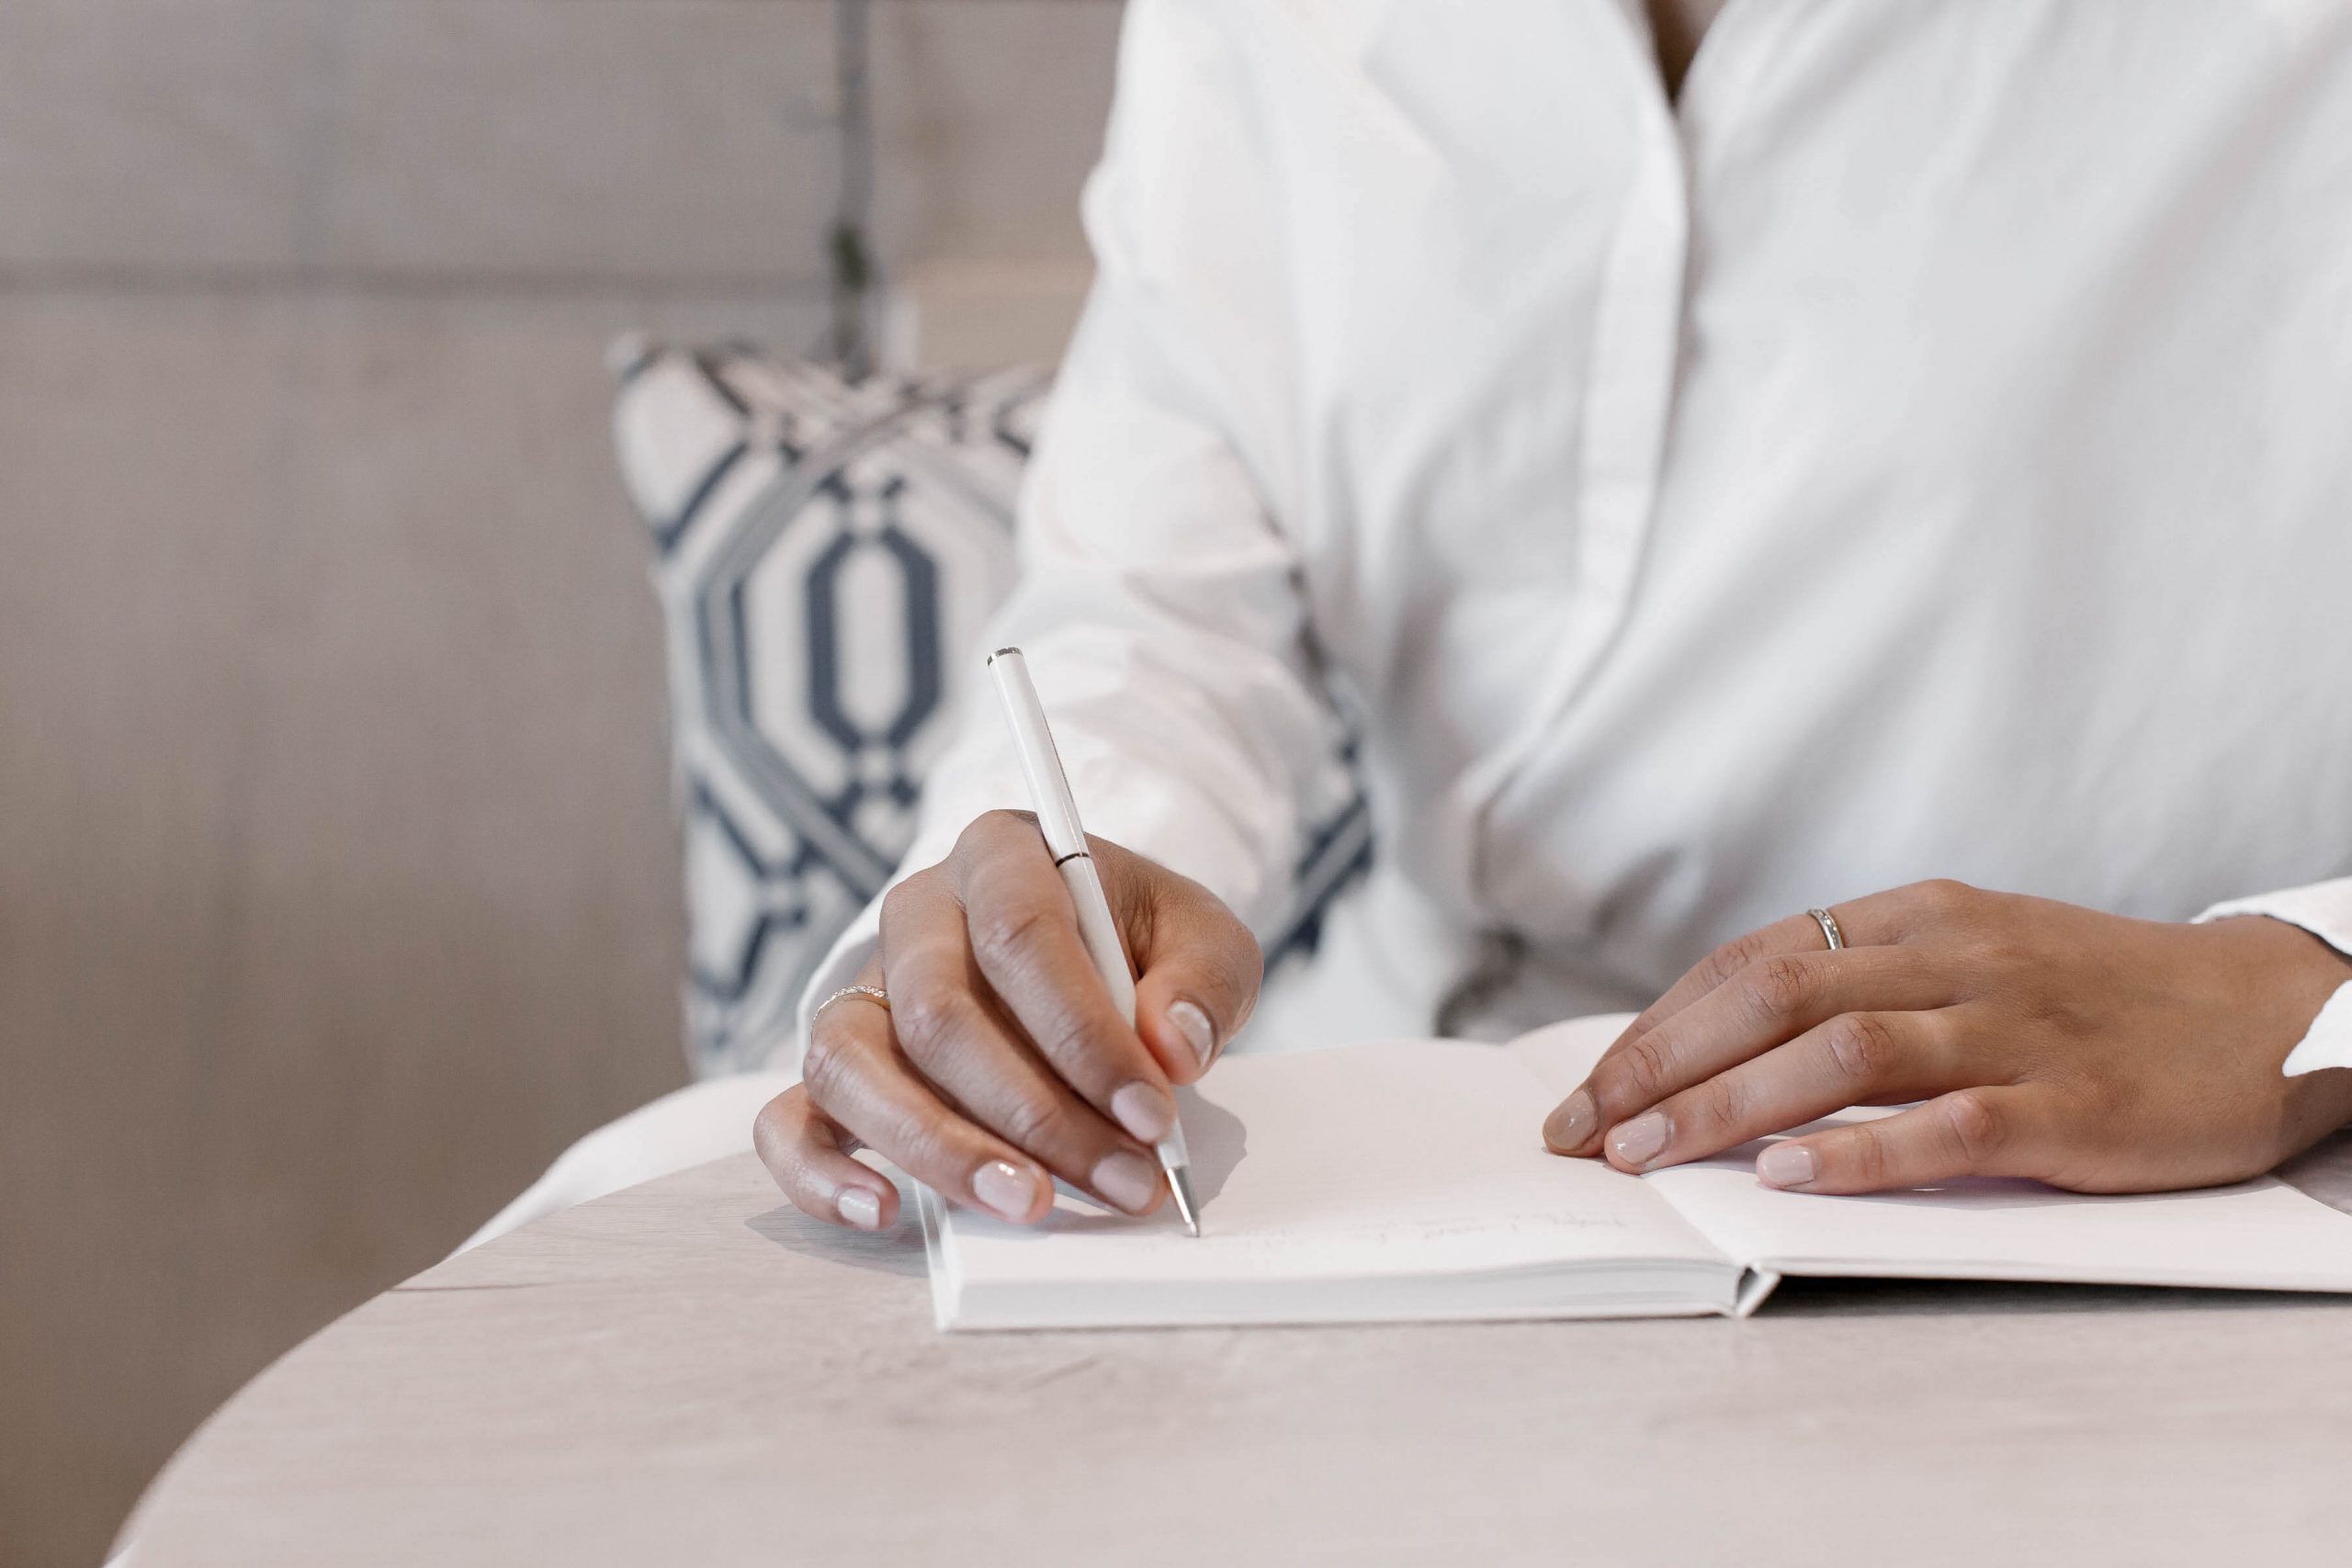 Woman's hands writing in a blank journal.